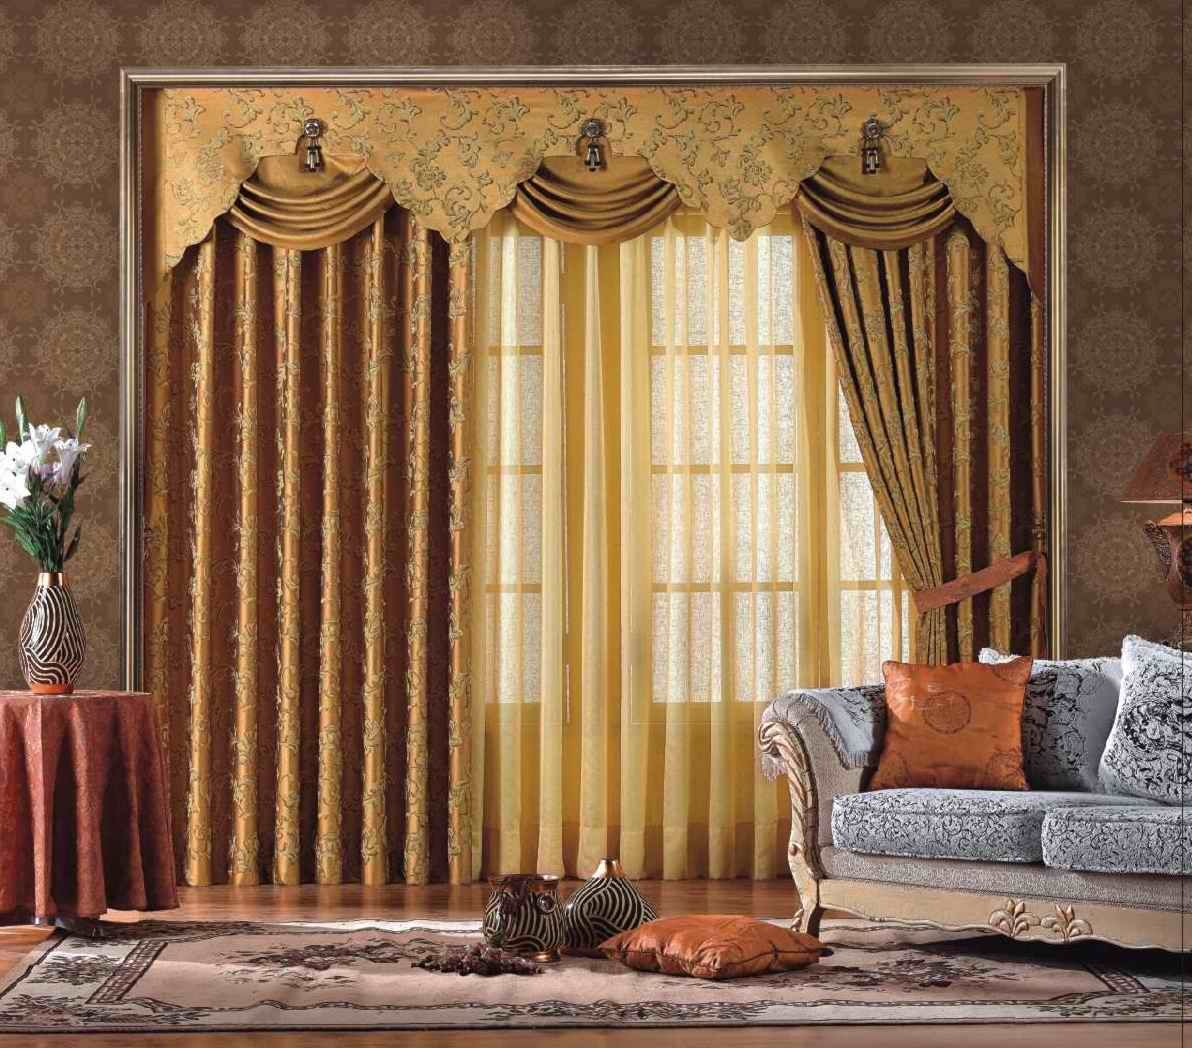 enhance your room with various curtain styles drapery room ideas - Curtain Design Ideas For Living Room